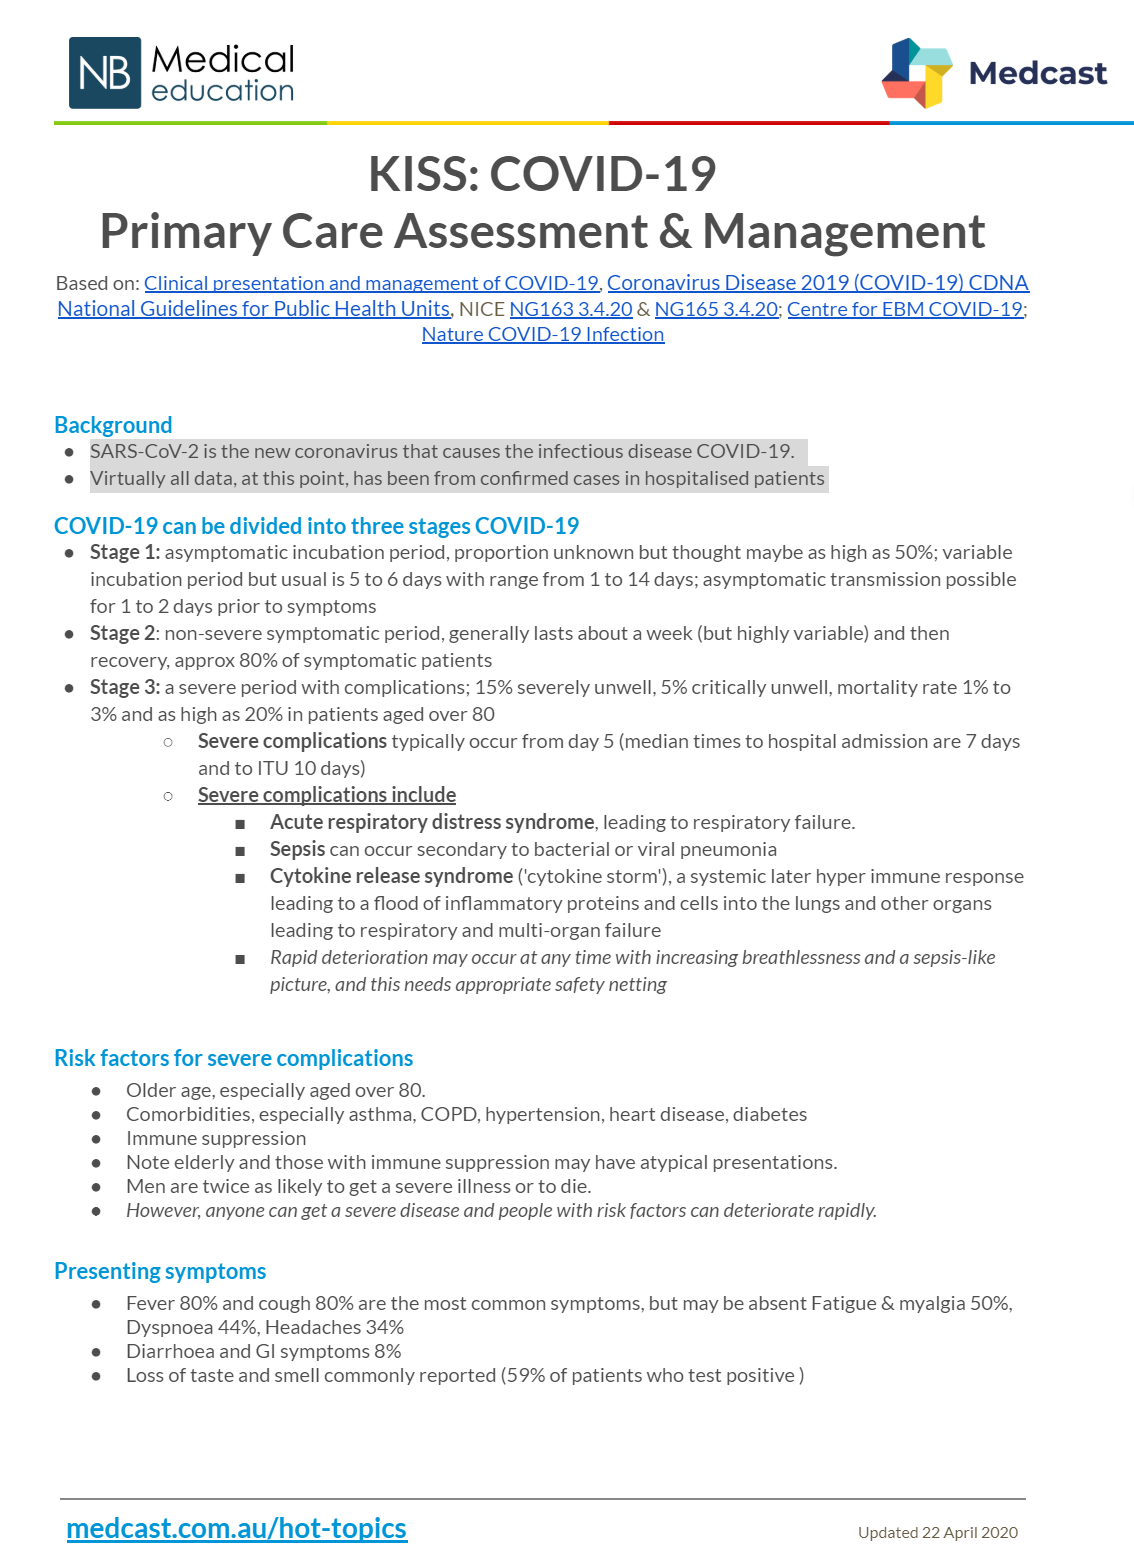 KISS: COVID-19 Primary Care Assessment & Management